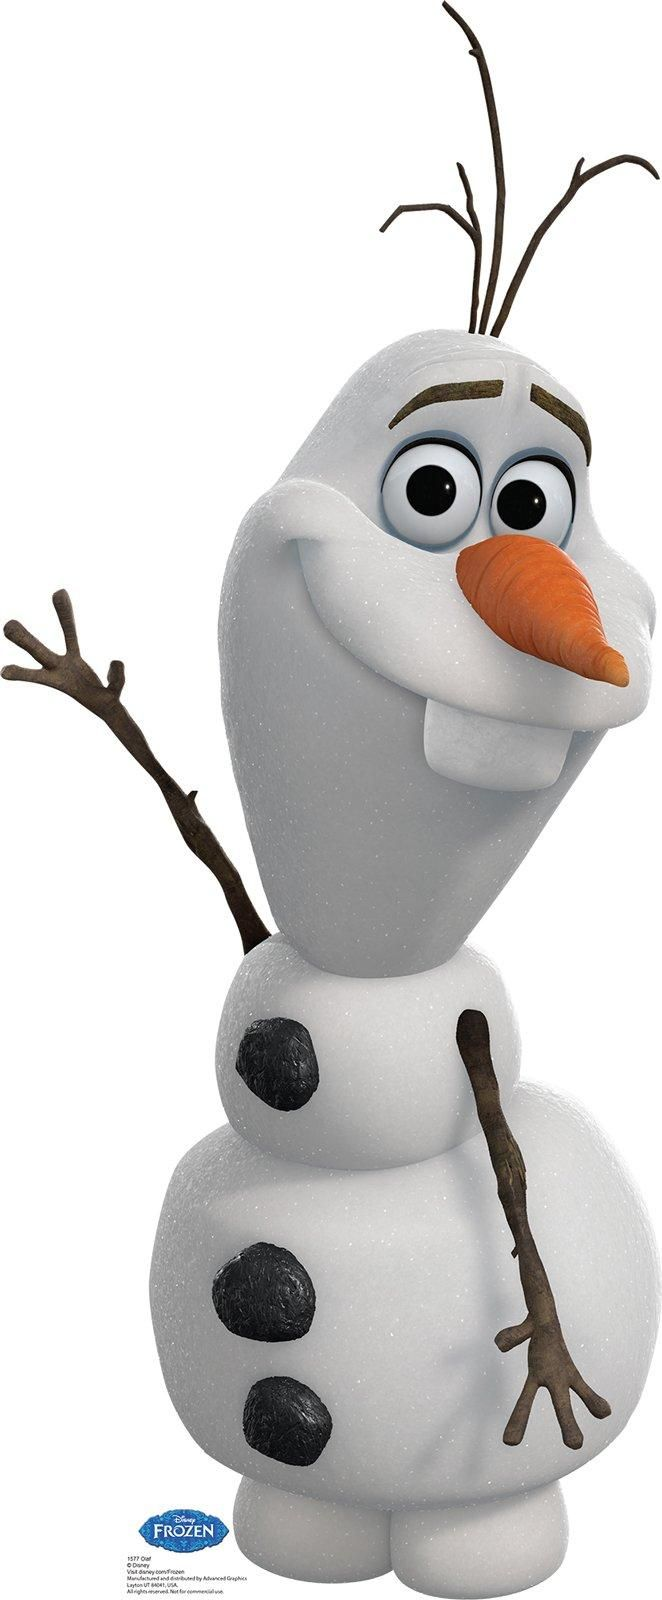 do you want to build a snowman? Disney Frozen Olaf Standup, 95951